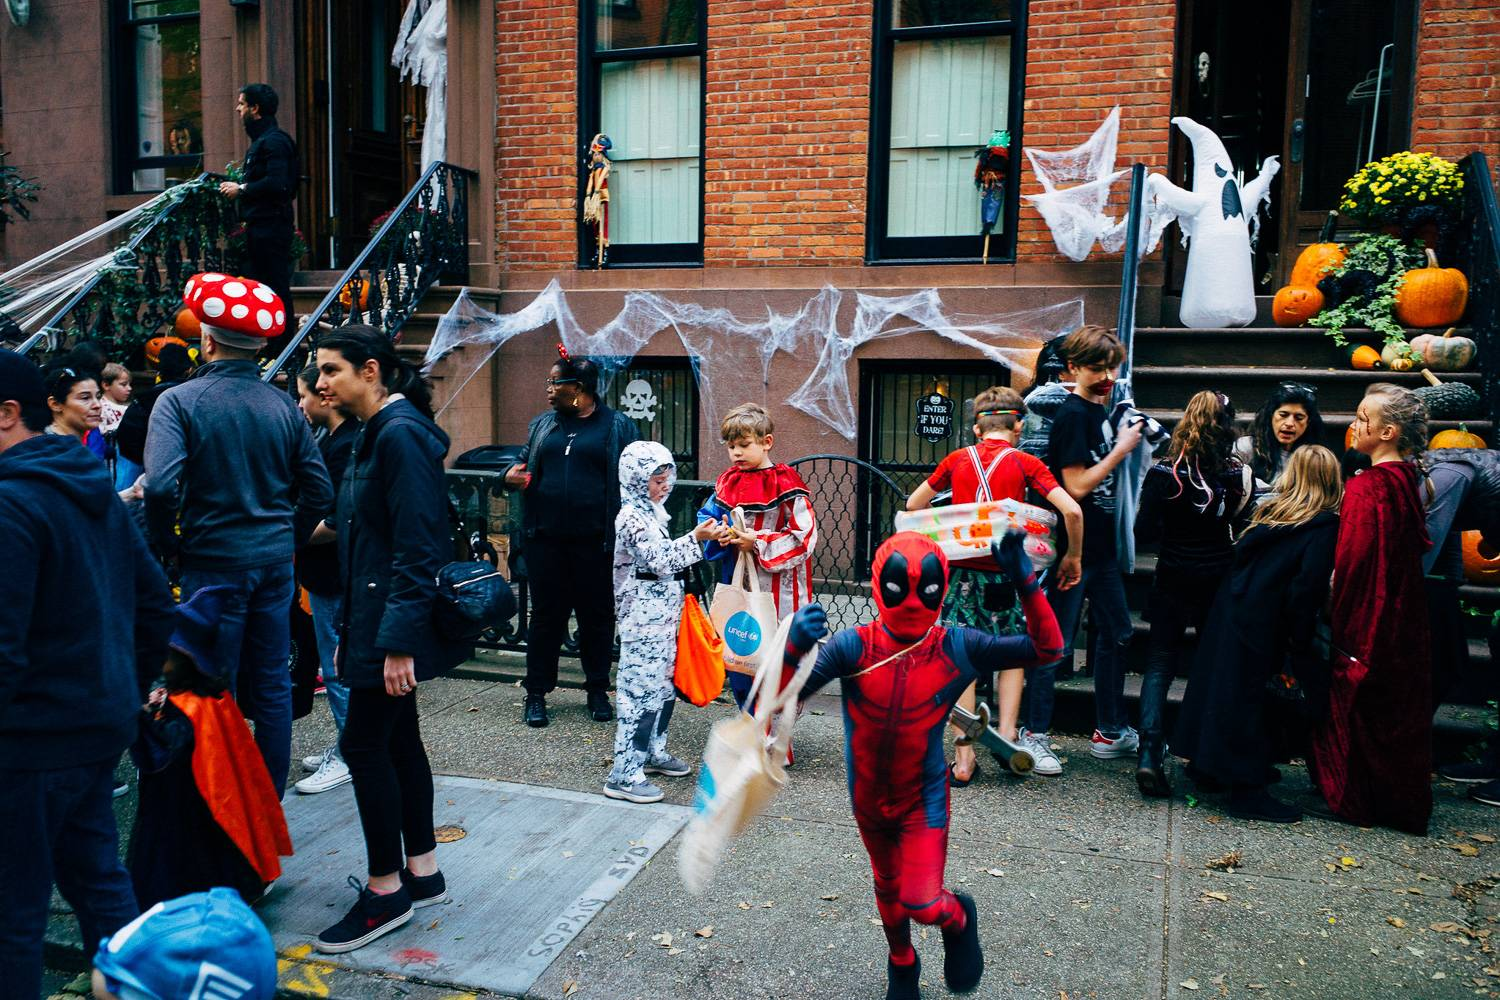 Image of children in costume trick or treating on a sidewalk in front of New York City townhouses.